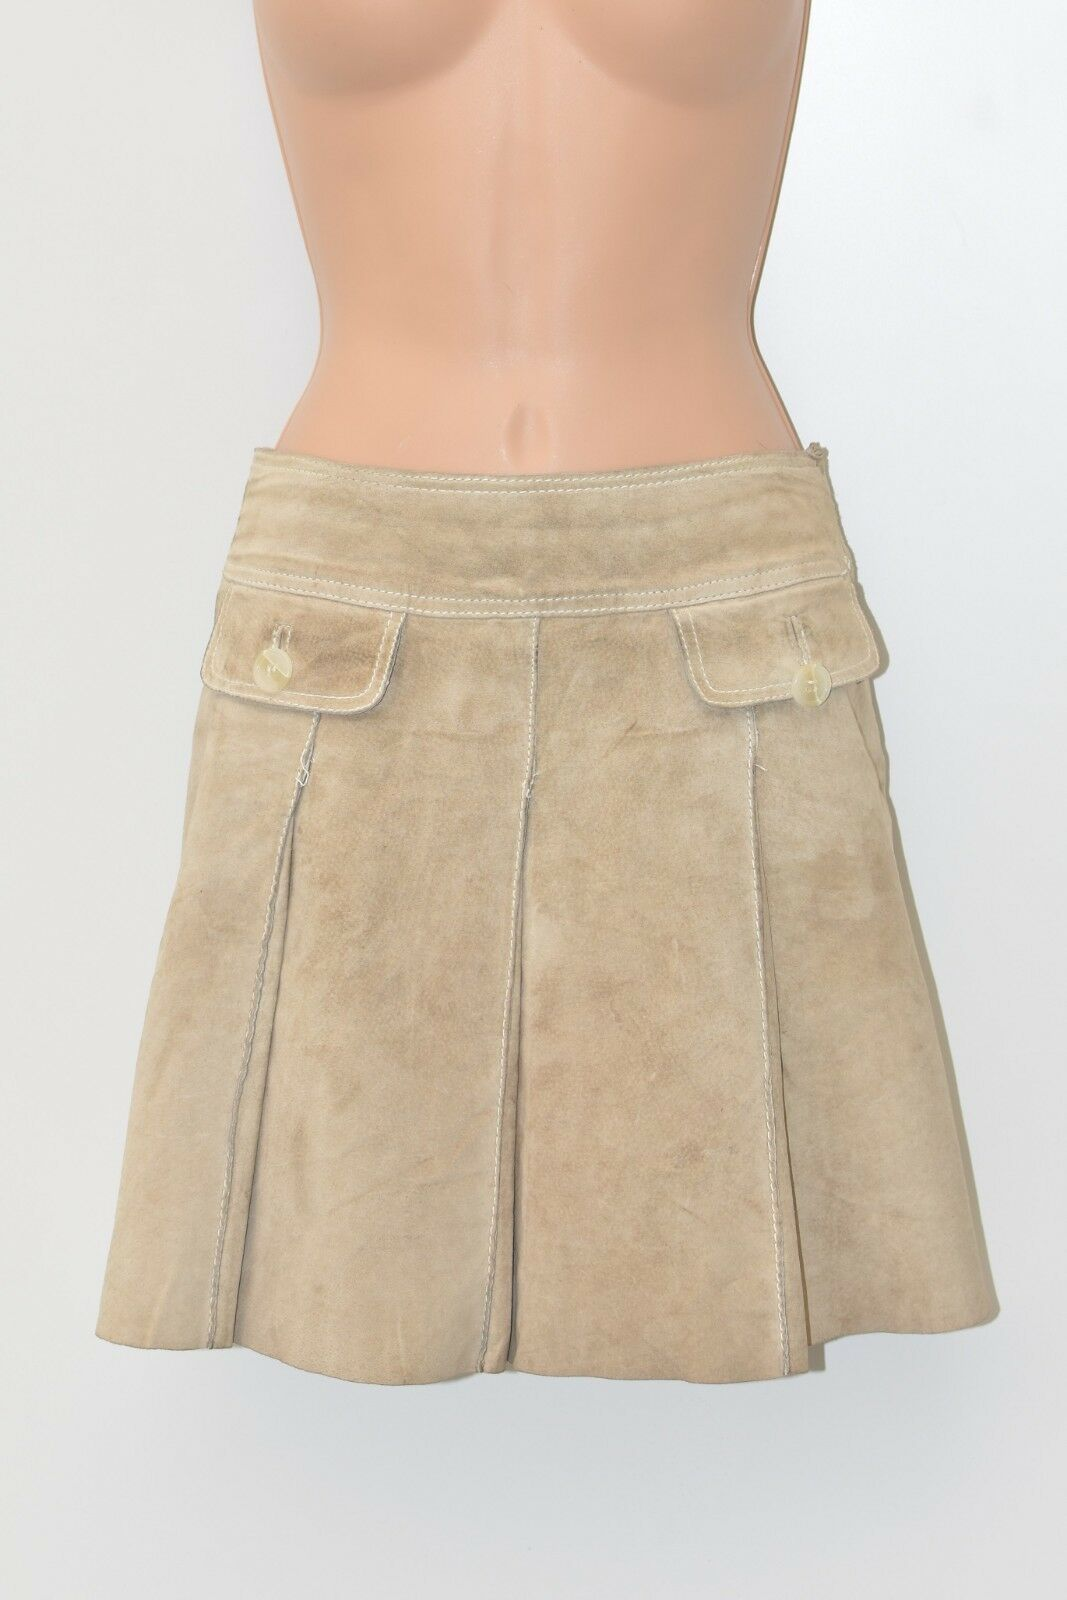 Brown Real Leather HALLHUBER Pleated Above Knee Skirt Size UK10 L16